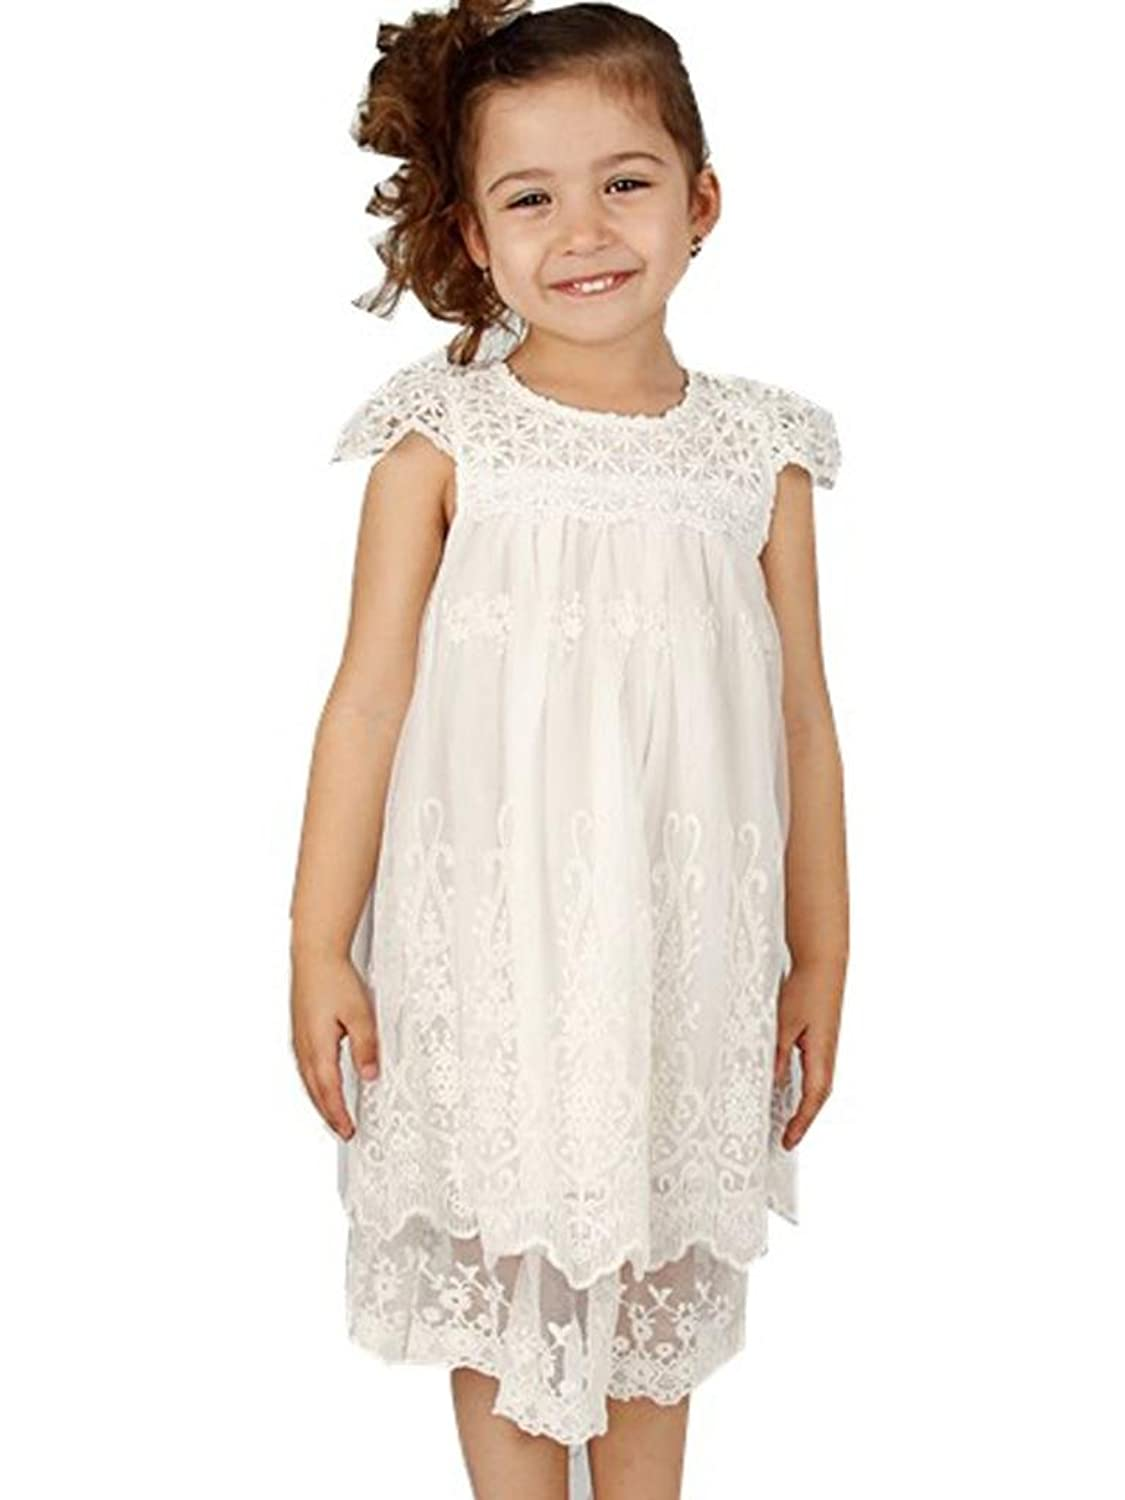 1920s Children Fashions: Girls, Boys, Baby Costumes Bow Dream Off White Ivory White Vintage Rustic Baptism Lace Flower Girls Dress $25.99 AT vintagedancer.com